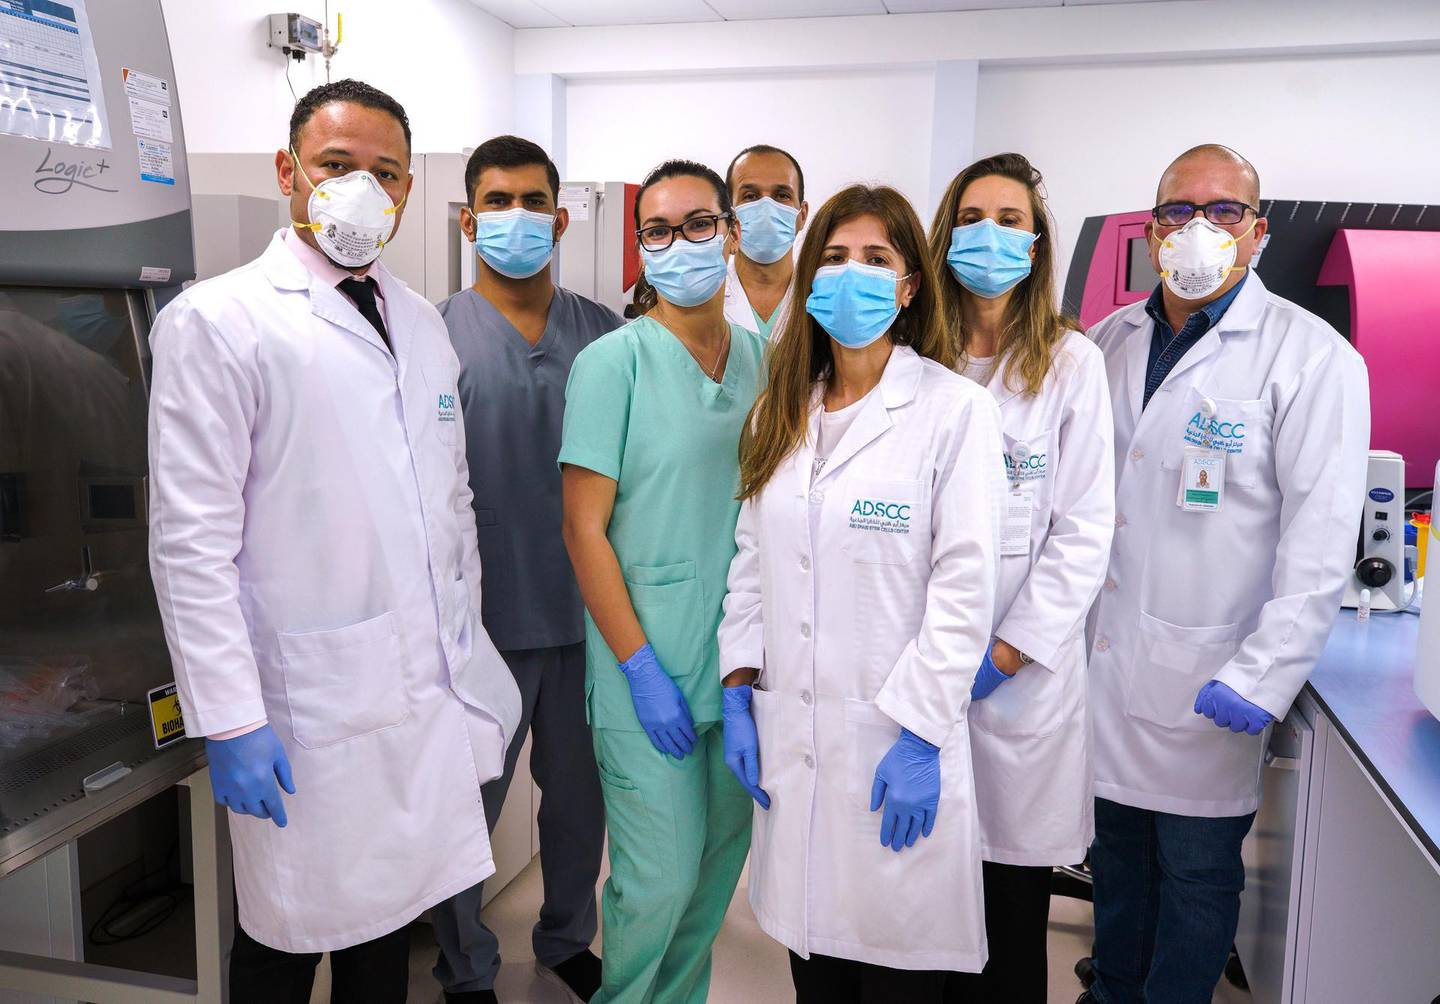 Abu Dhabi, United Arab Emirates, June 14, 2020.   Dr. Yendry Ventura, the general manager of Abu Dhabi Stem Cell Centre with his team.Victor Besa  / The NationalSection:  NAReporter:  Daniel Bardsley